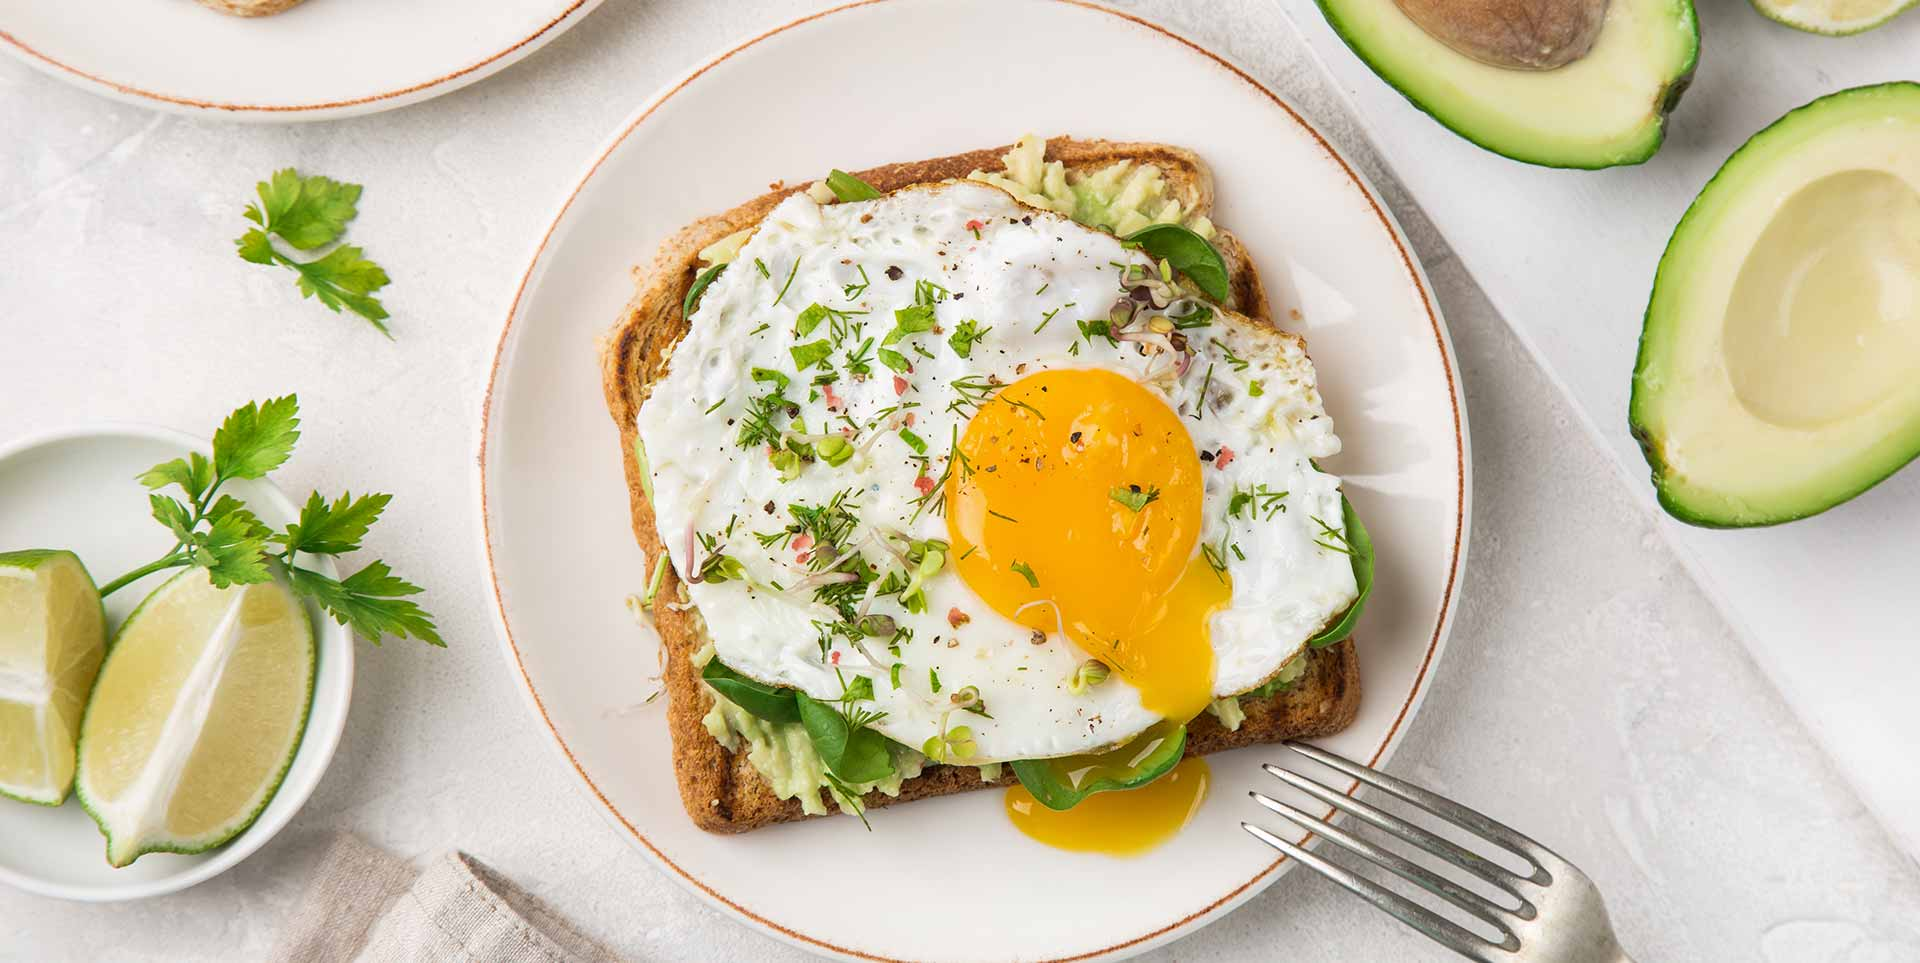 Avocado and egg toast on a glass plate